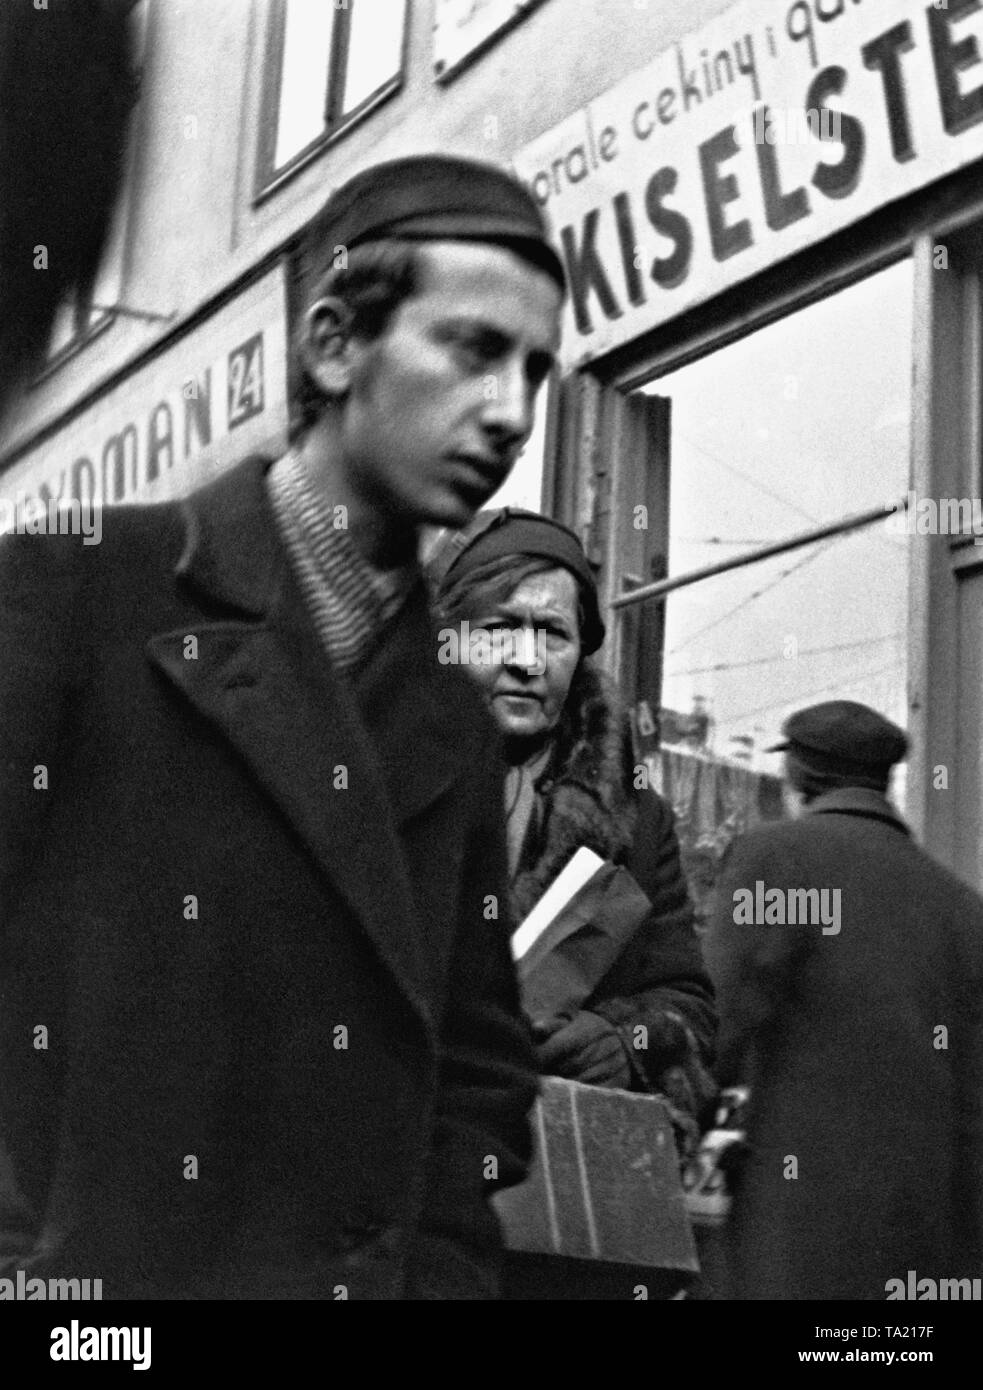 A young Jewish man in the Polish city of Lublin. - Stock Image